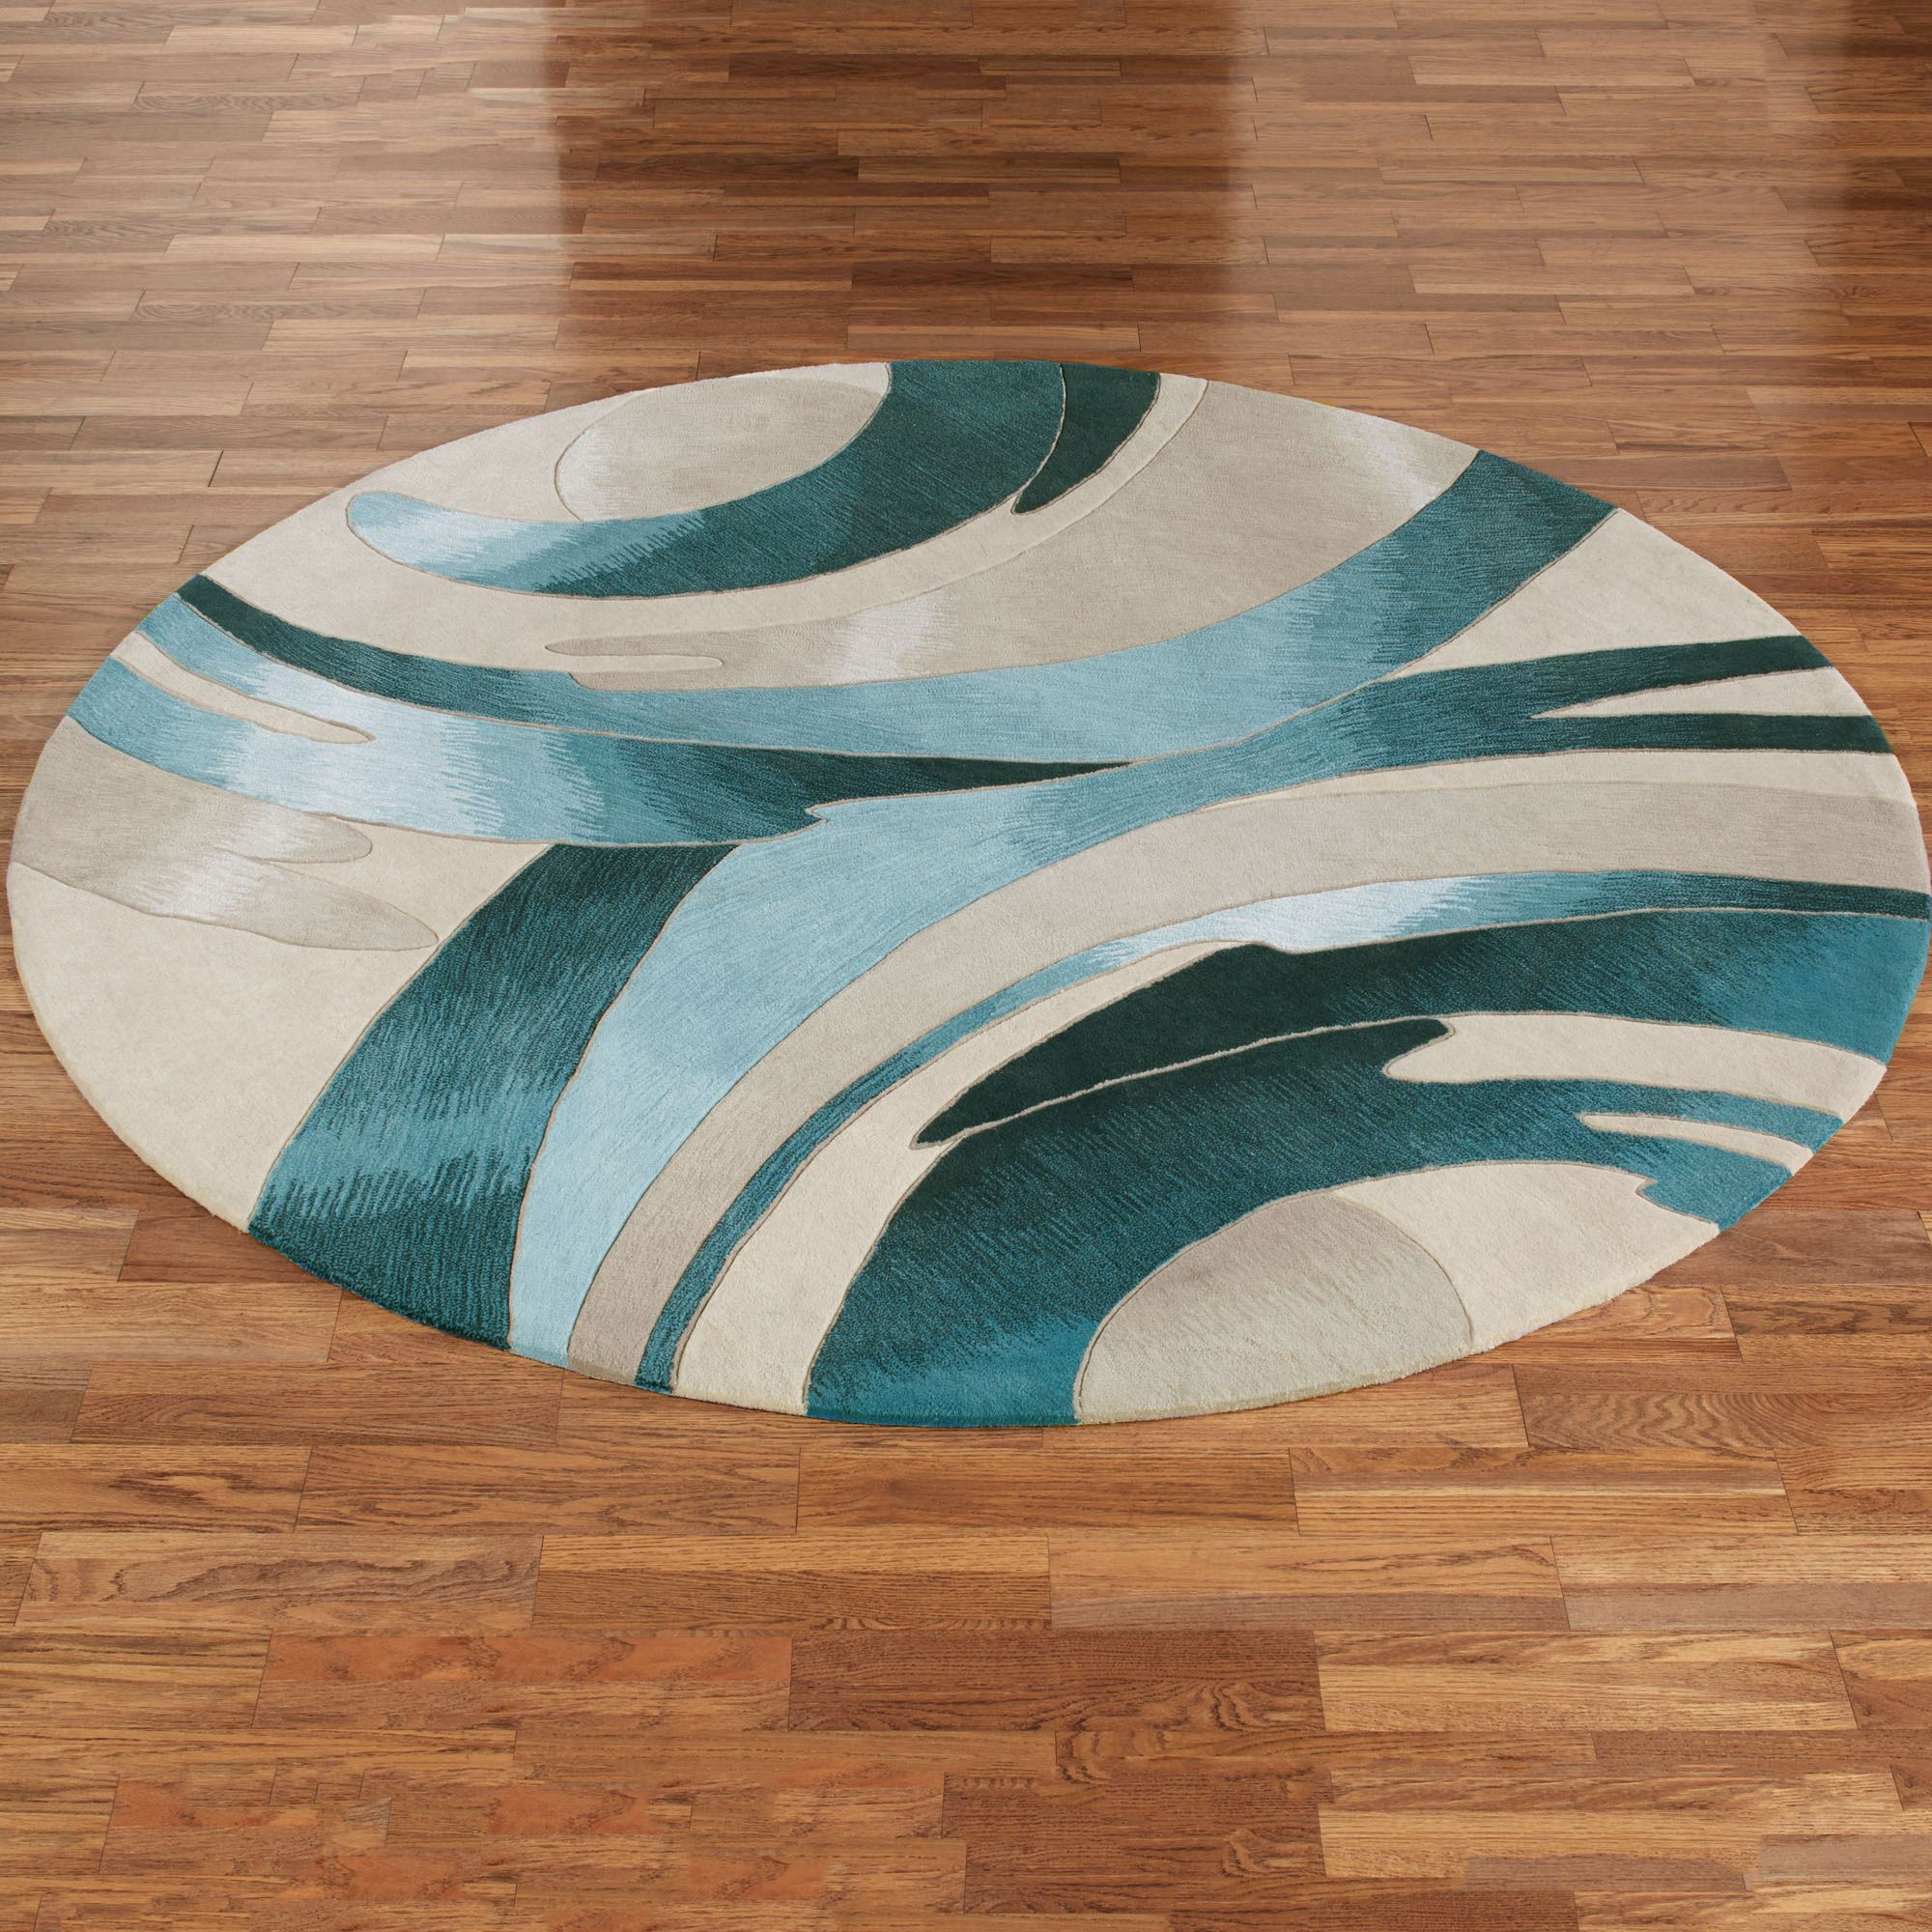 beautiful round carpets perfect storm abstract round carpets by jasonw studios DQIWUEC